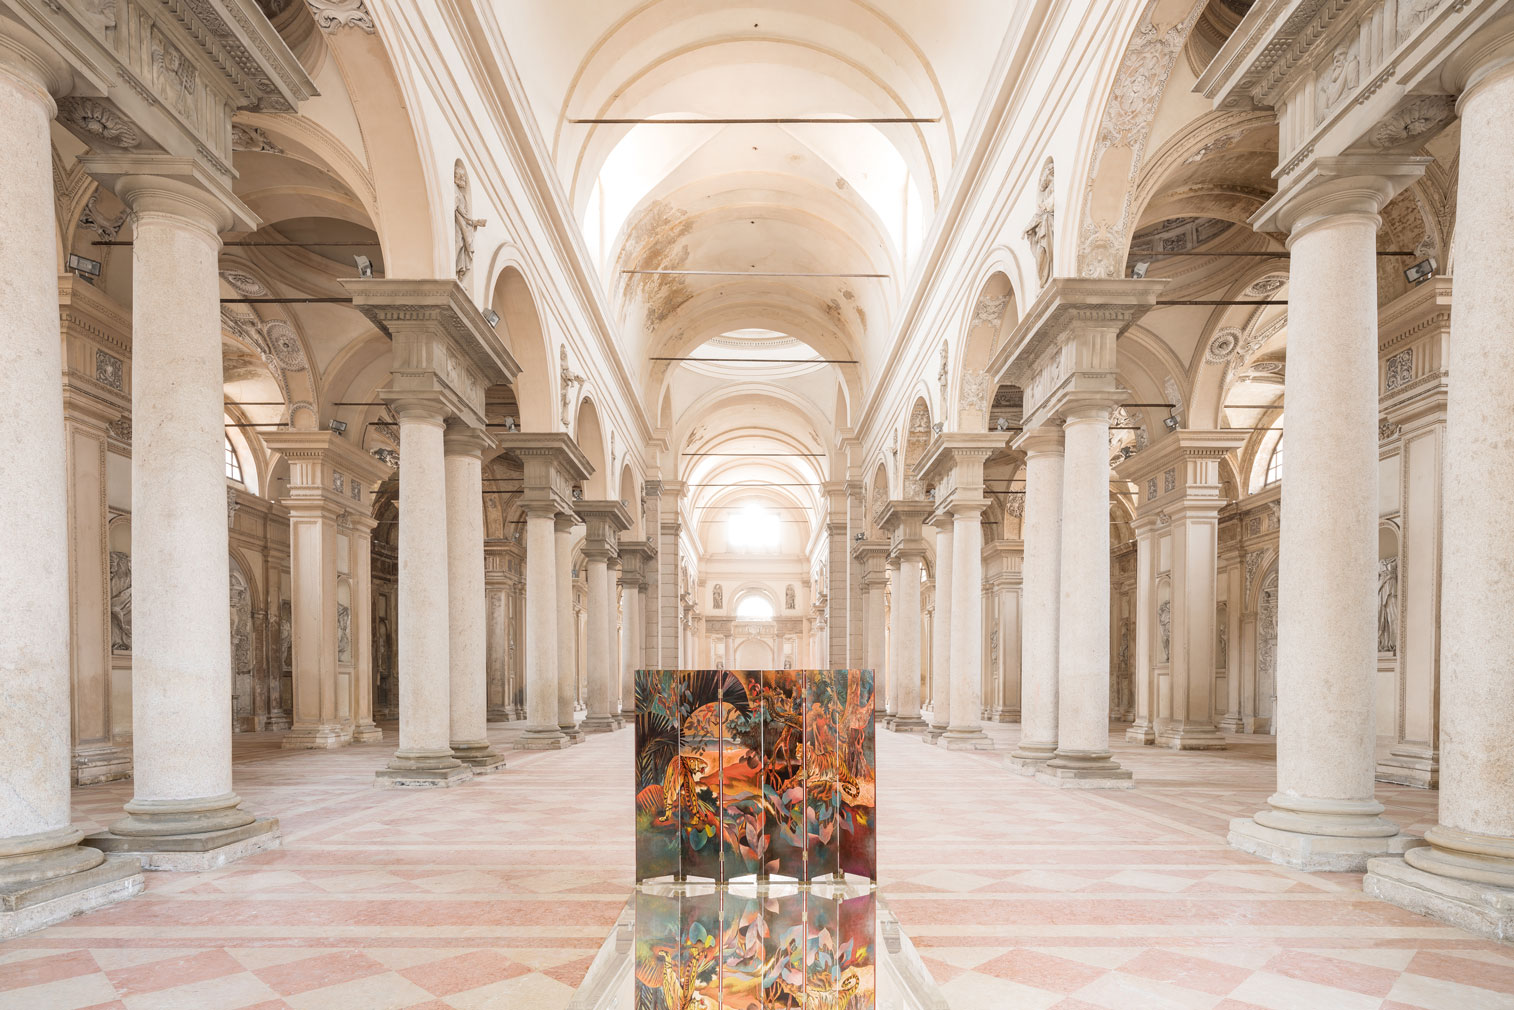 A disused church in Piacenza has been reborn as an art gallery